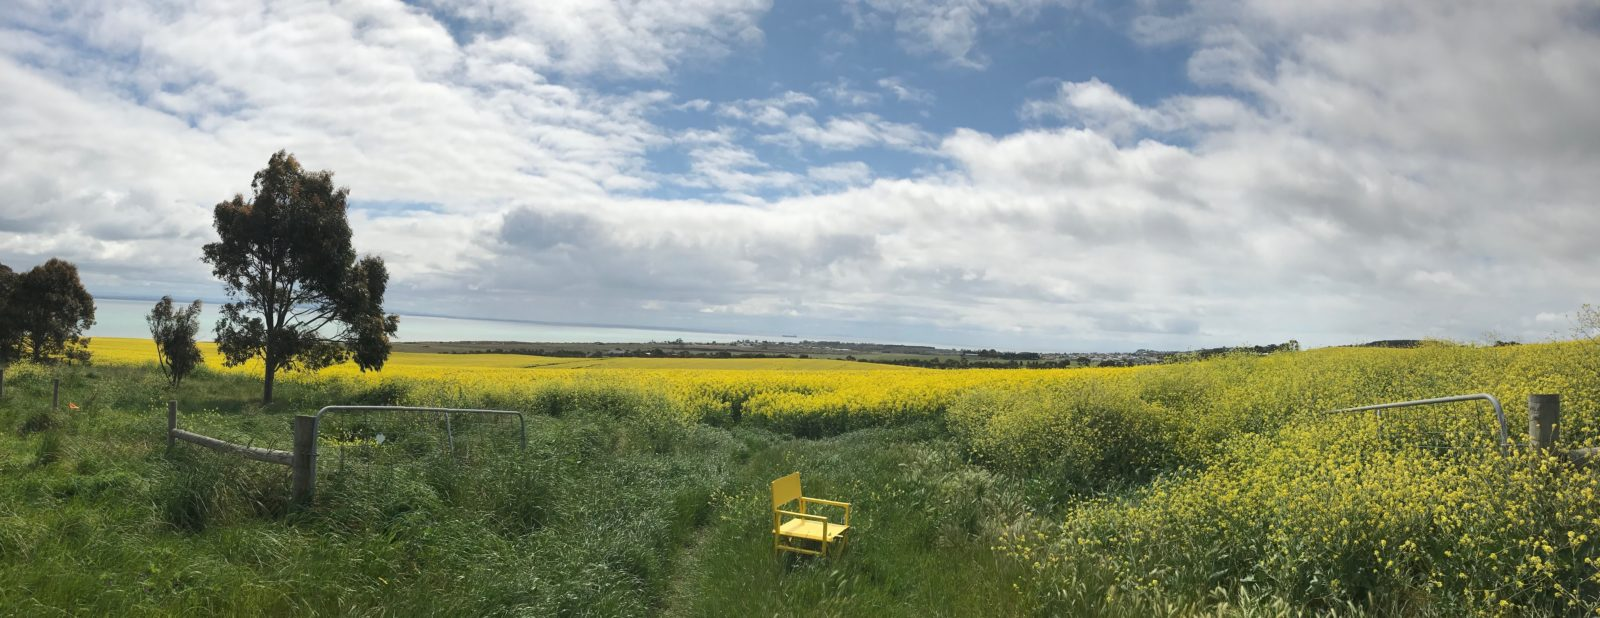 North Bellarine Film Festival's yellow chair in the canola fields of the Bellarine Peninsula .